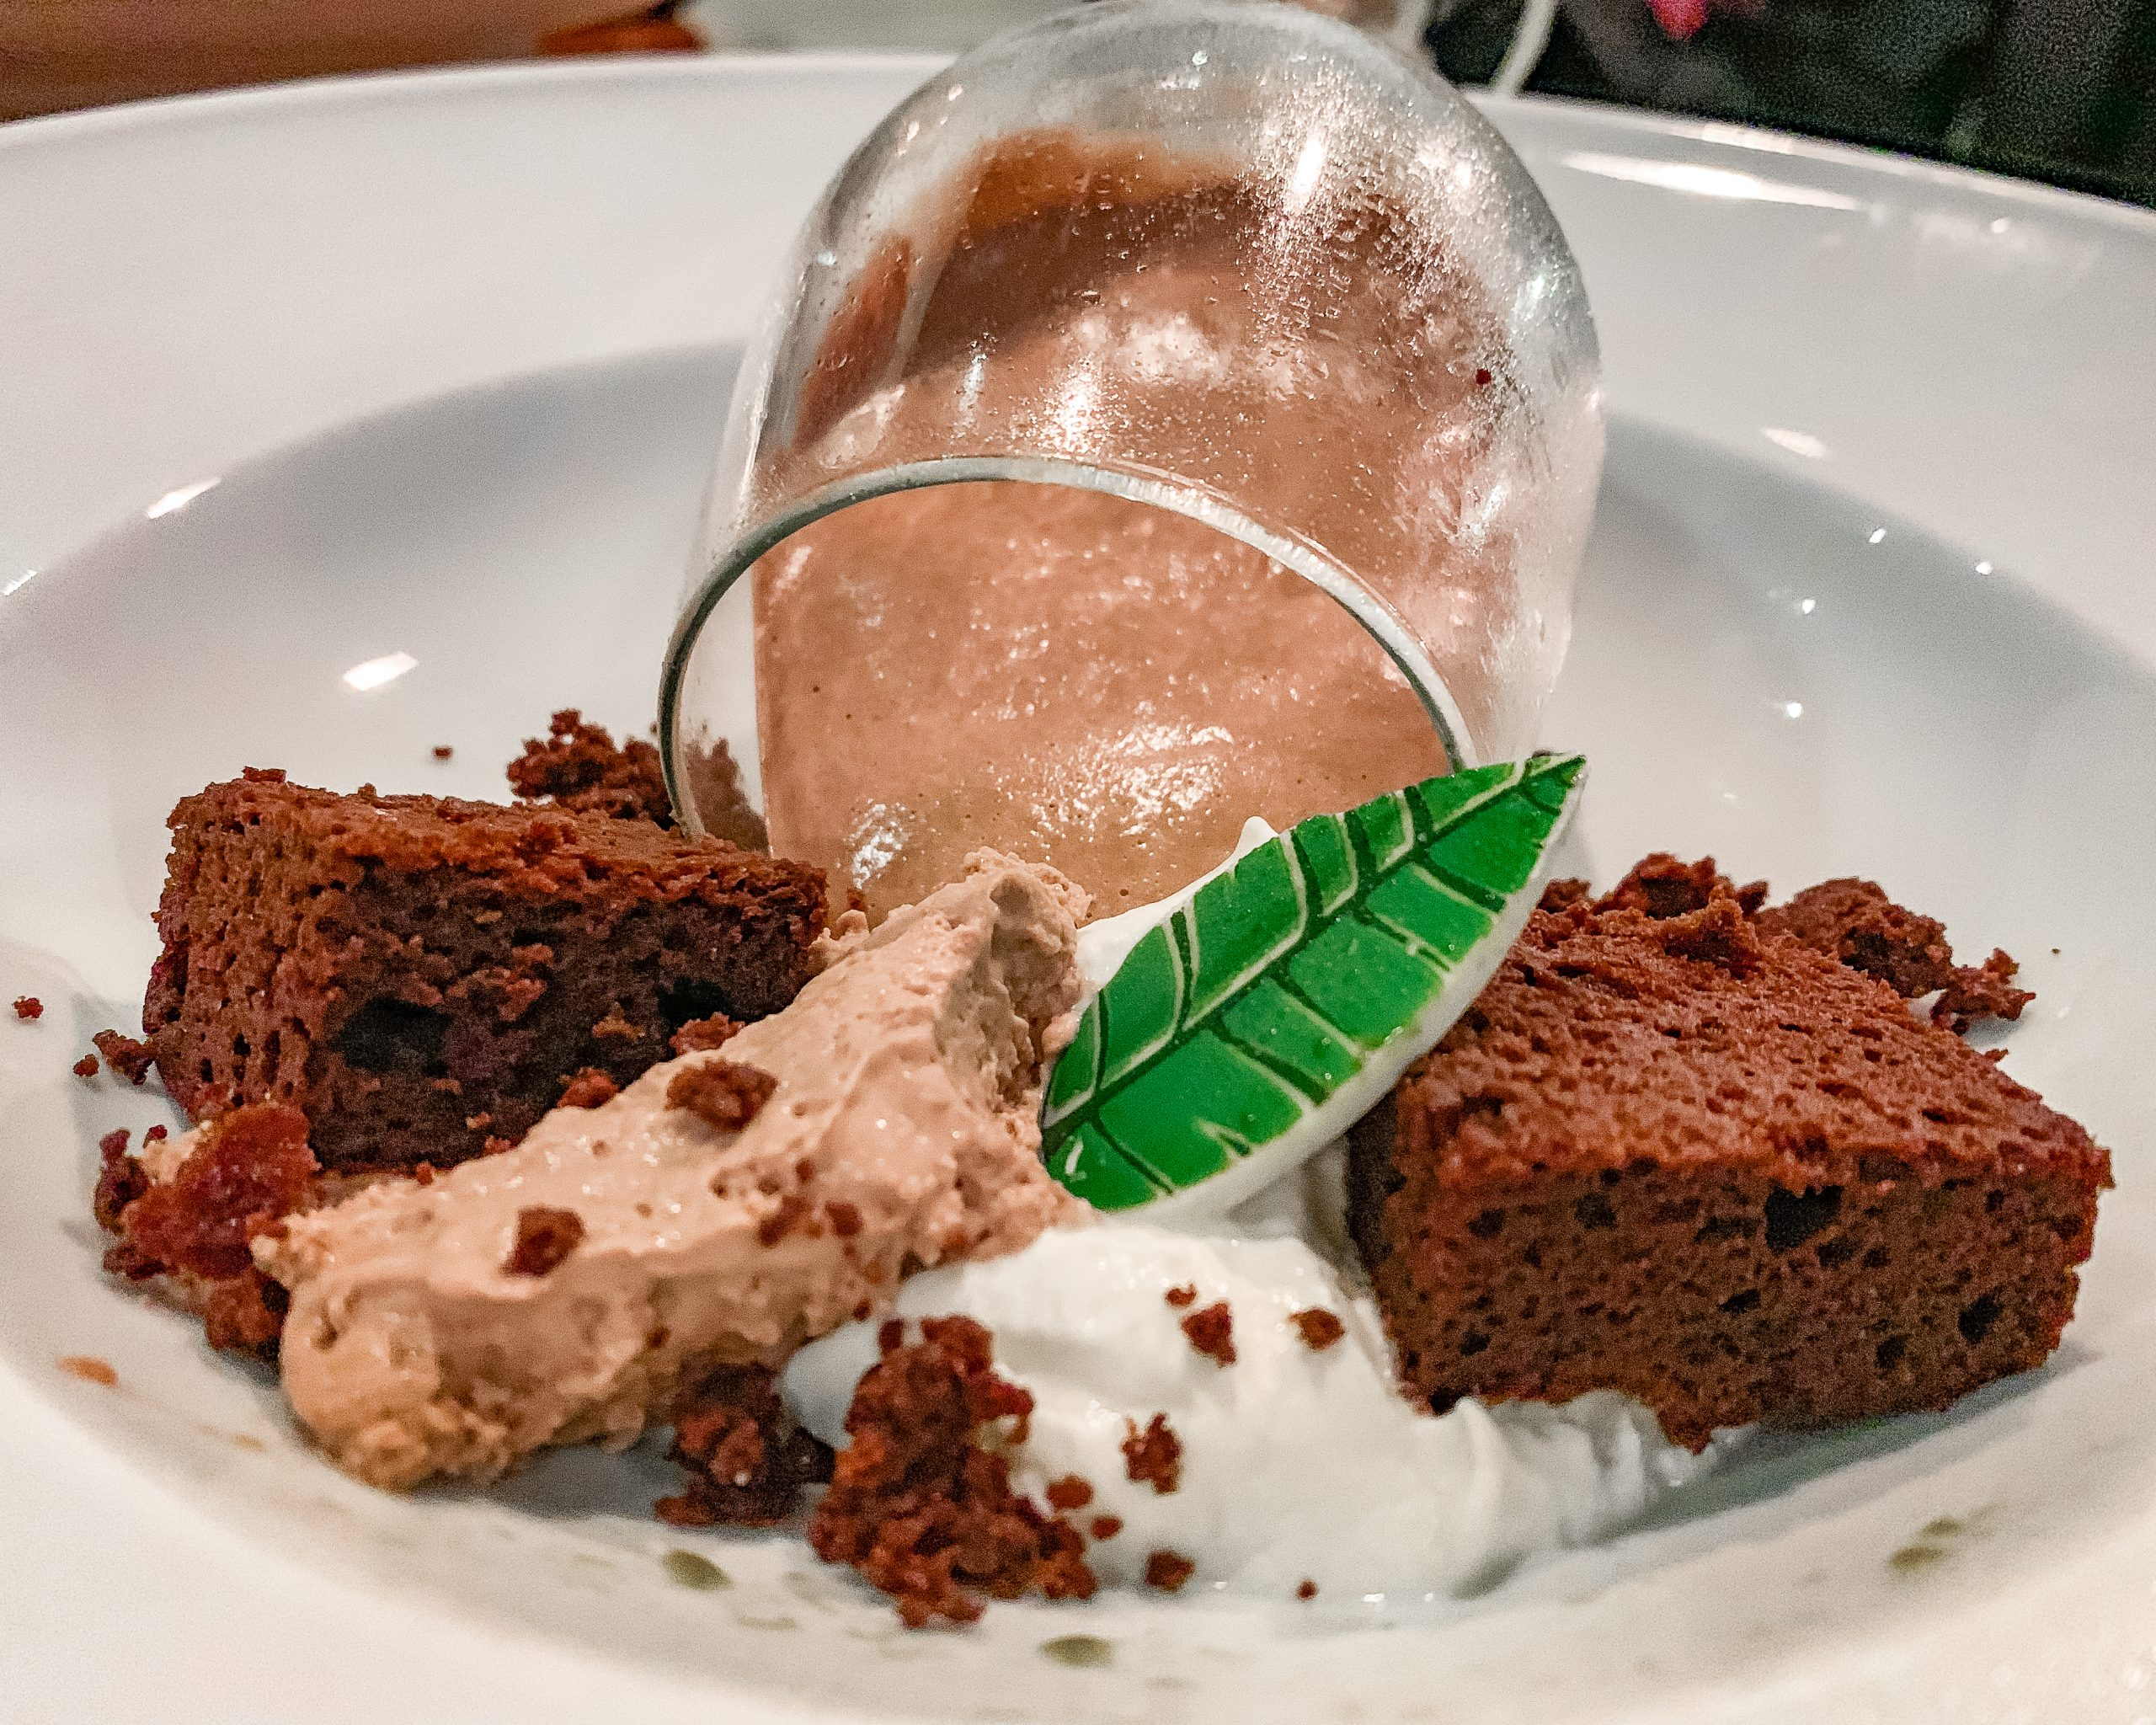 Cigar-Smoked chocolate Mousse Cake with dark chocolate basil semifreddo served in a wine glass.